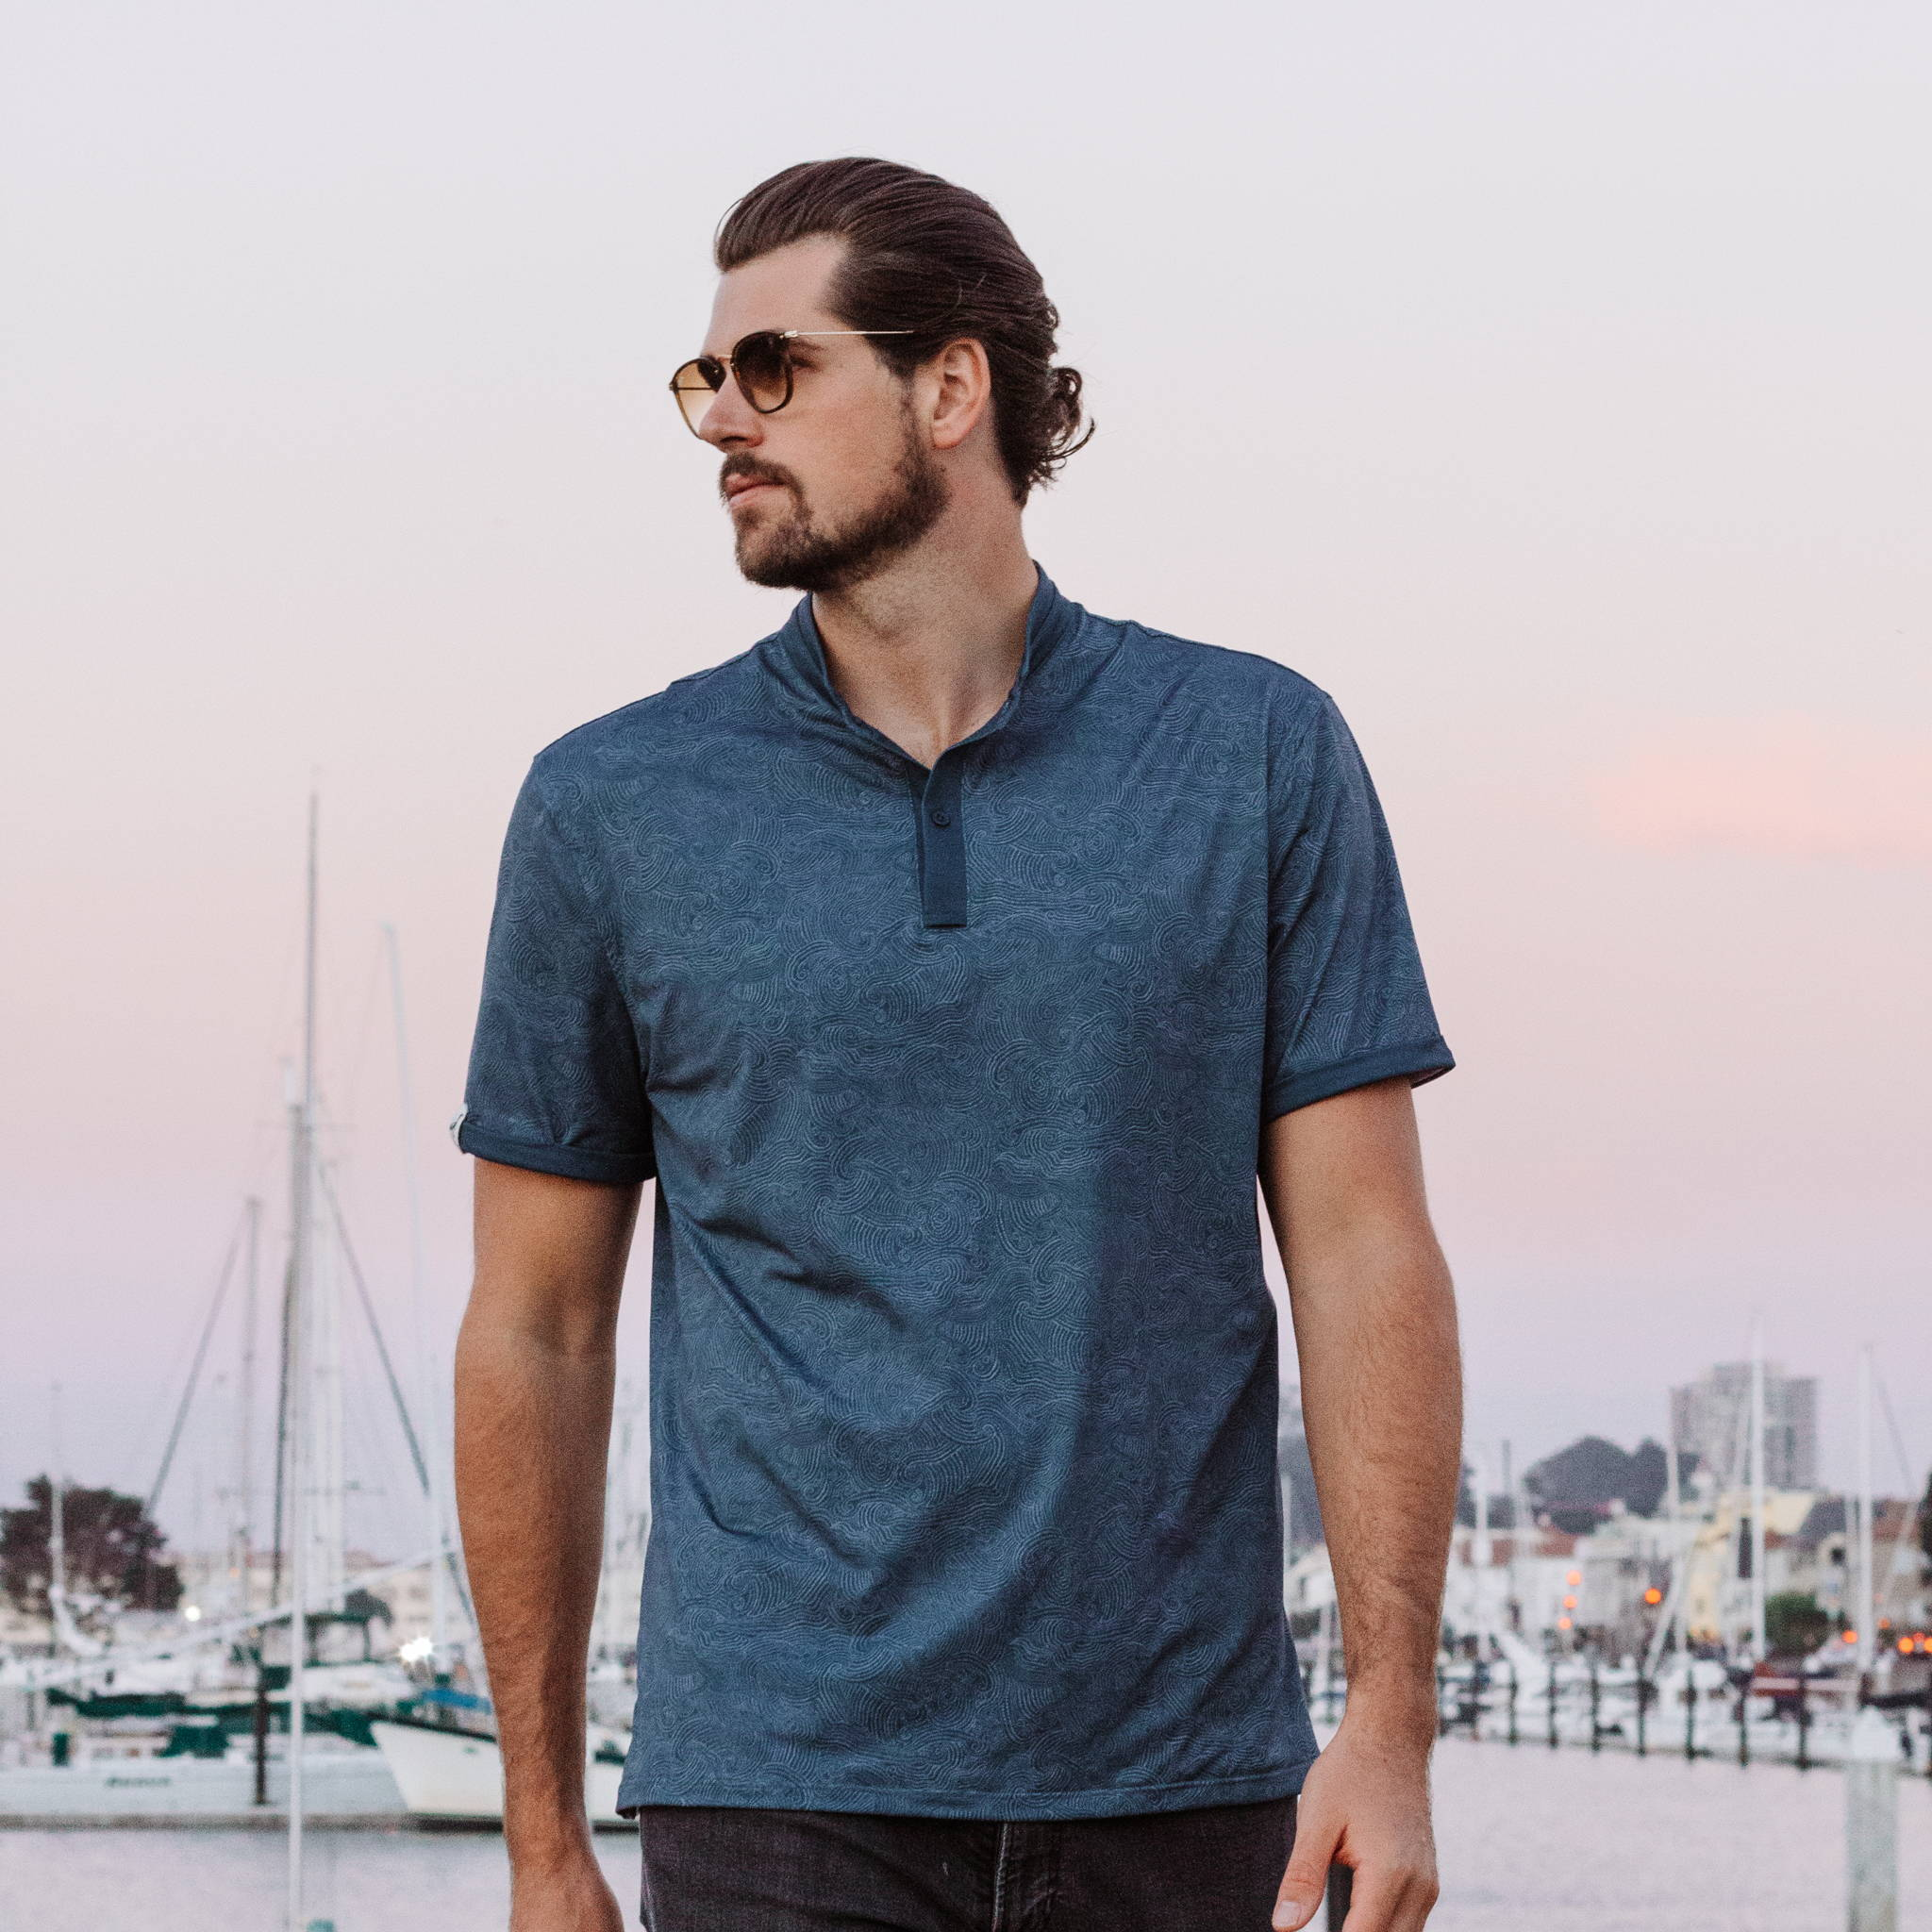 MANTRA The Gyre - Polar Polo - sustainable mens polo made in the USA from repurposed materials